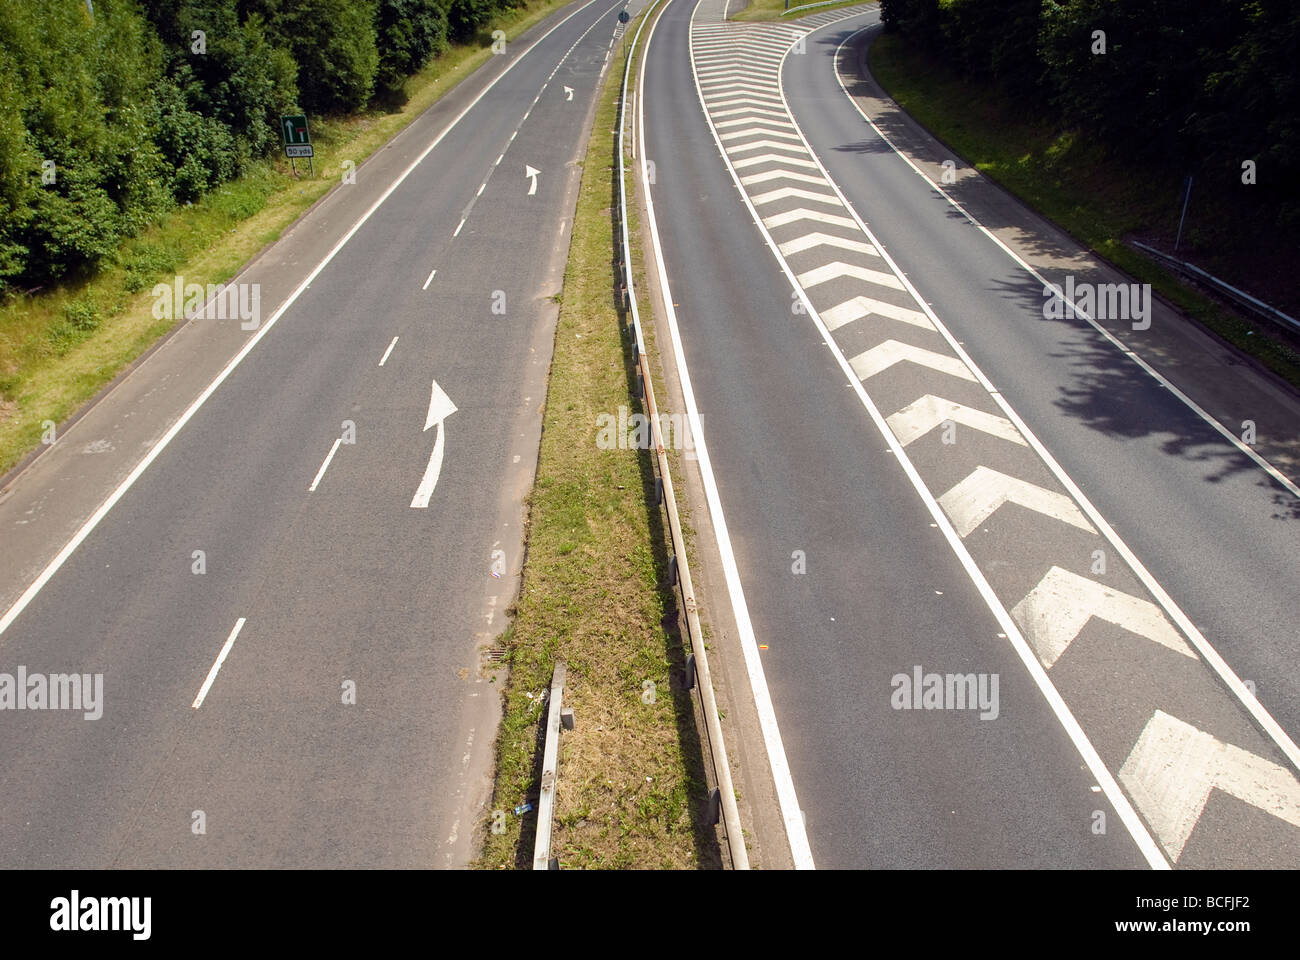 A clear section of dual carriageway road with arrow markings to keep left. - Stock Image